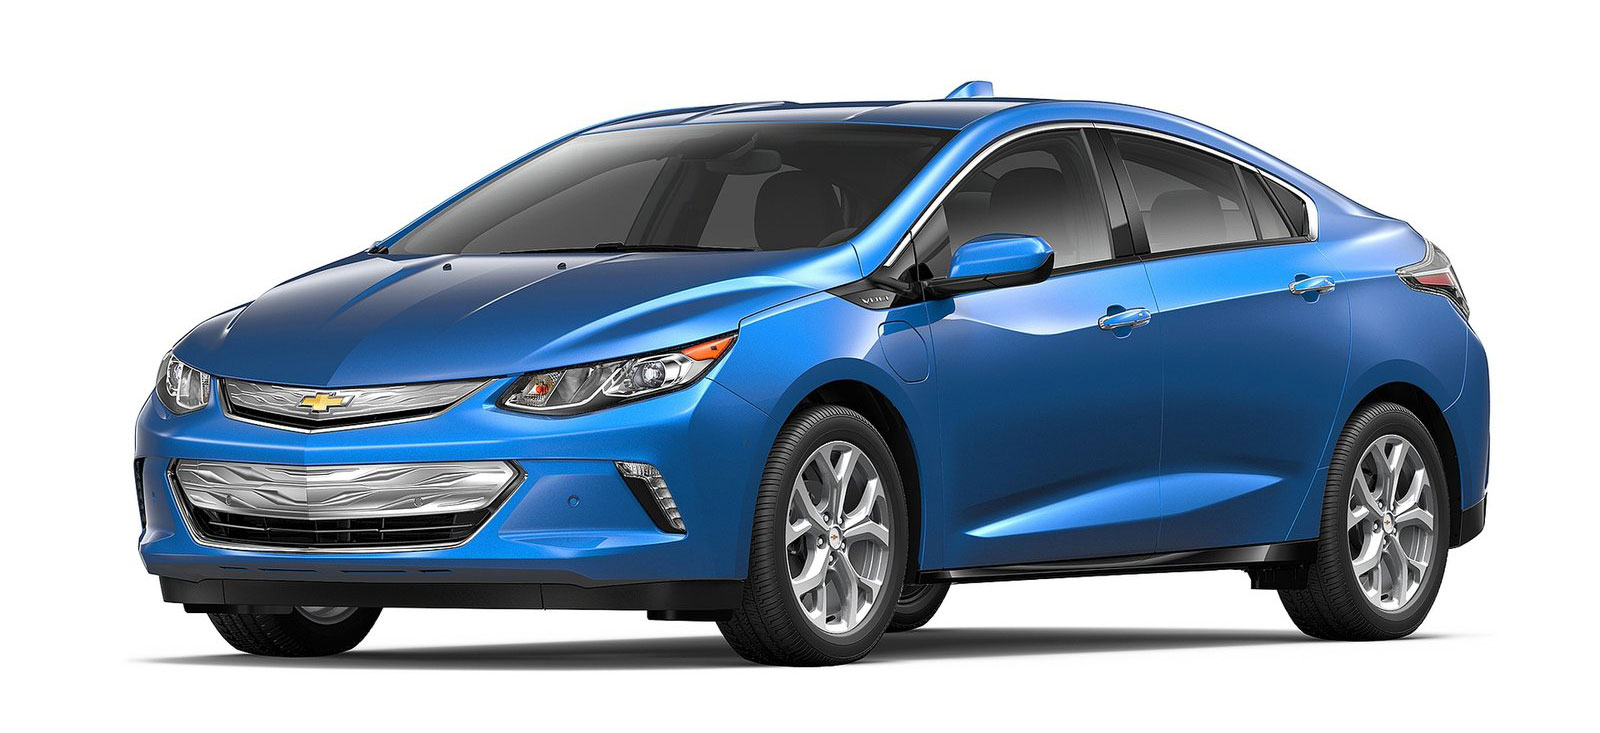 2015 chevy volt pics autos post. Black Bedroom Furniture Sets. Home Design Ideas